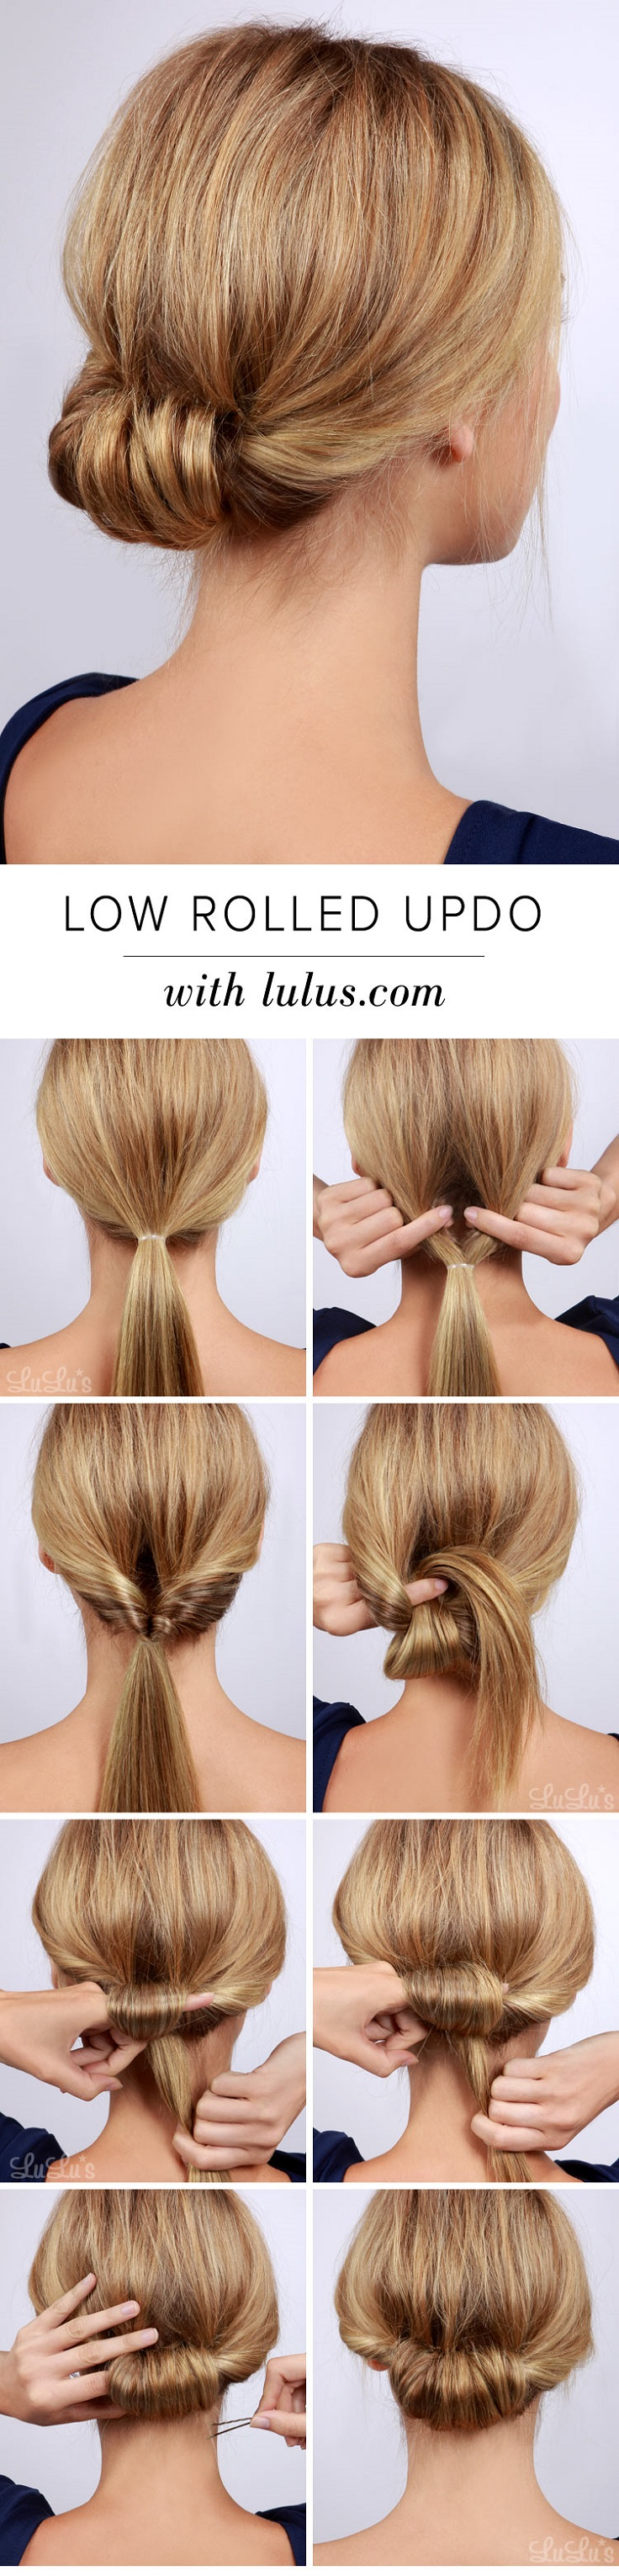 Low-Rolled-Updo